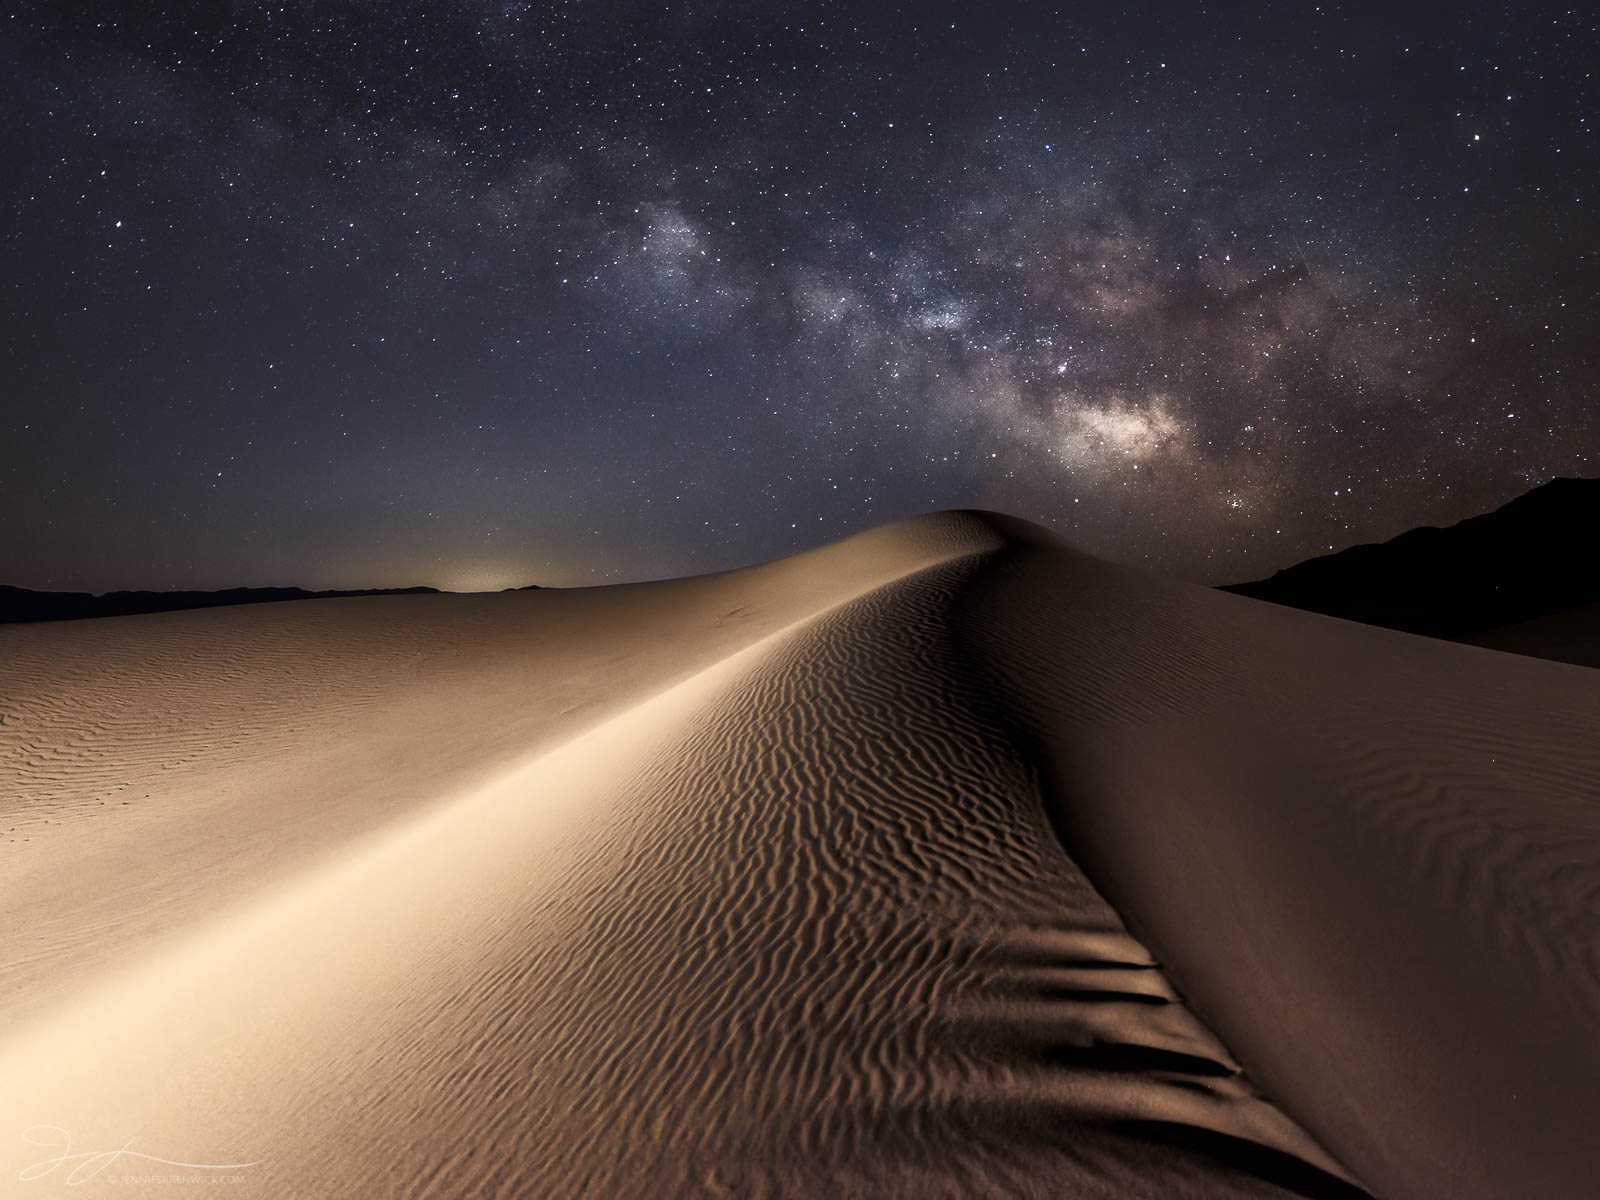 The Milky Way rises above the Mesquite Dunes in Death Valley National Park.